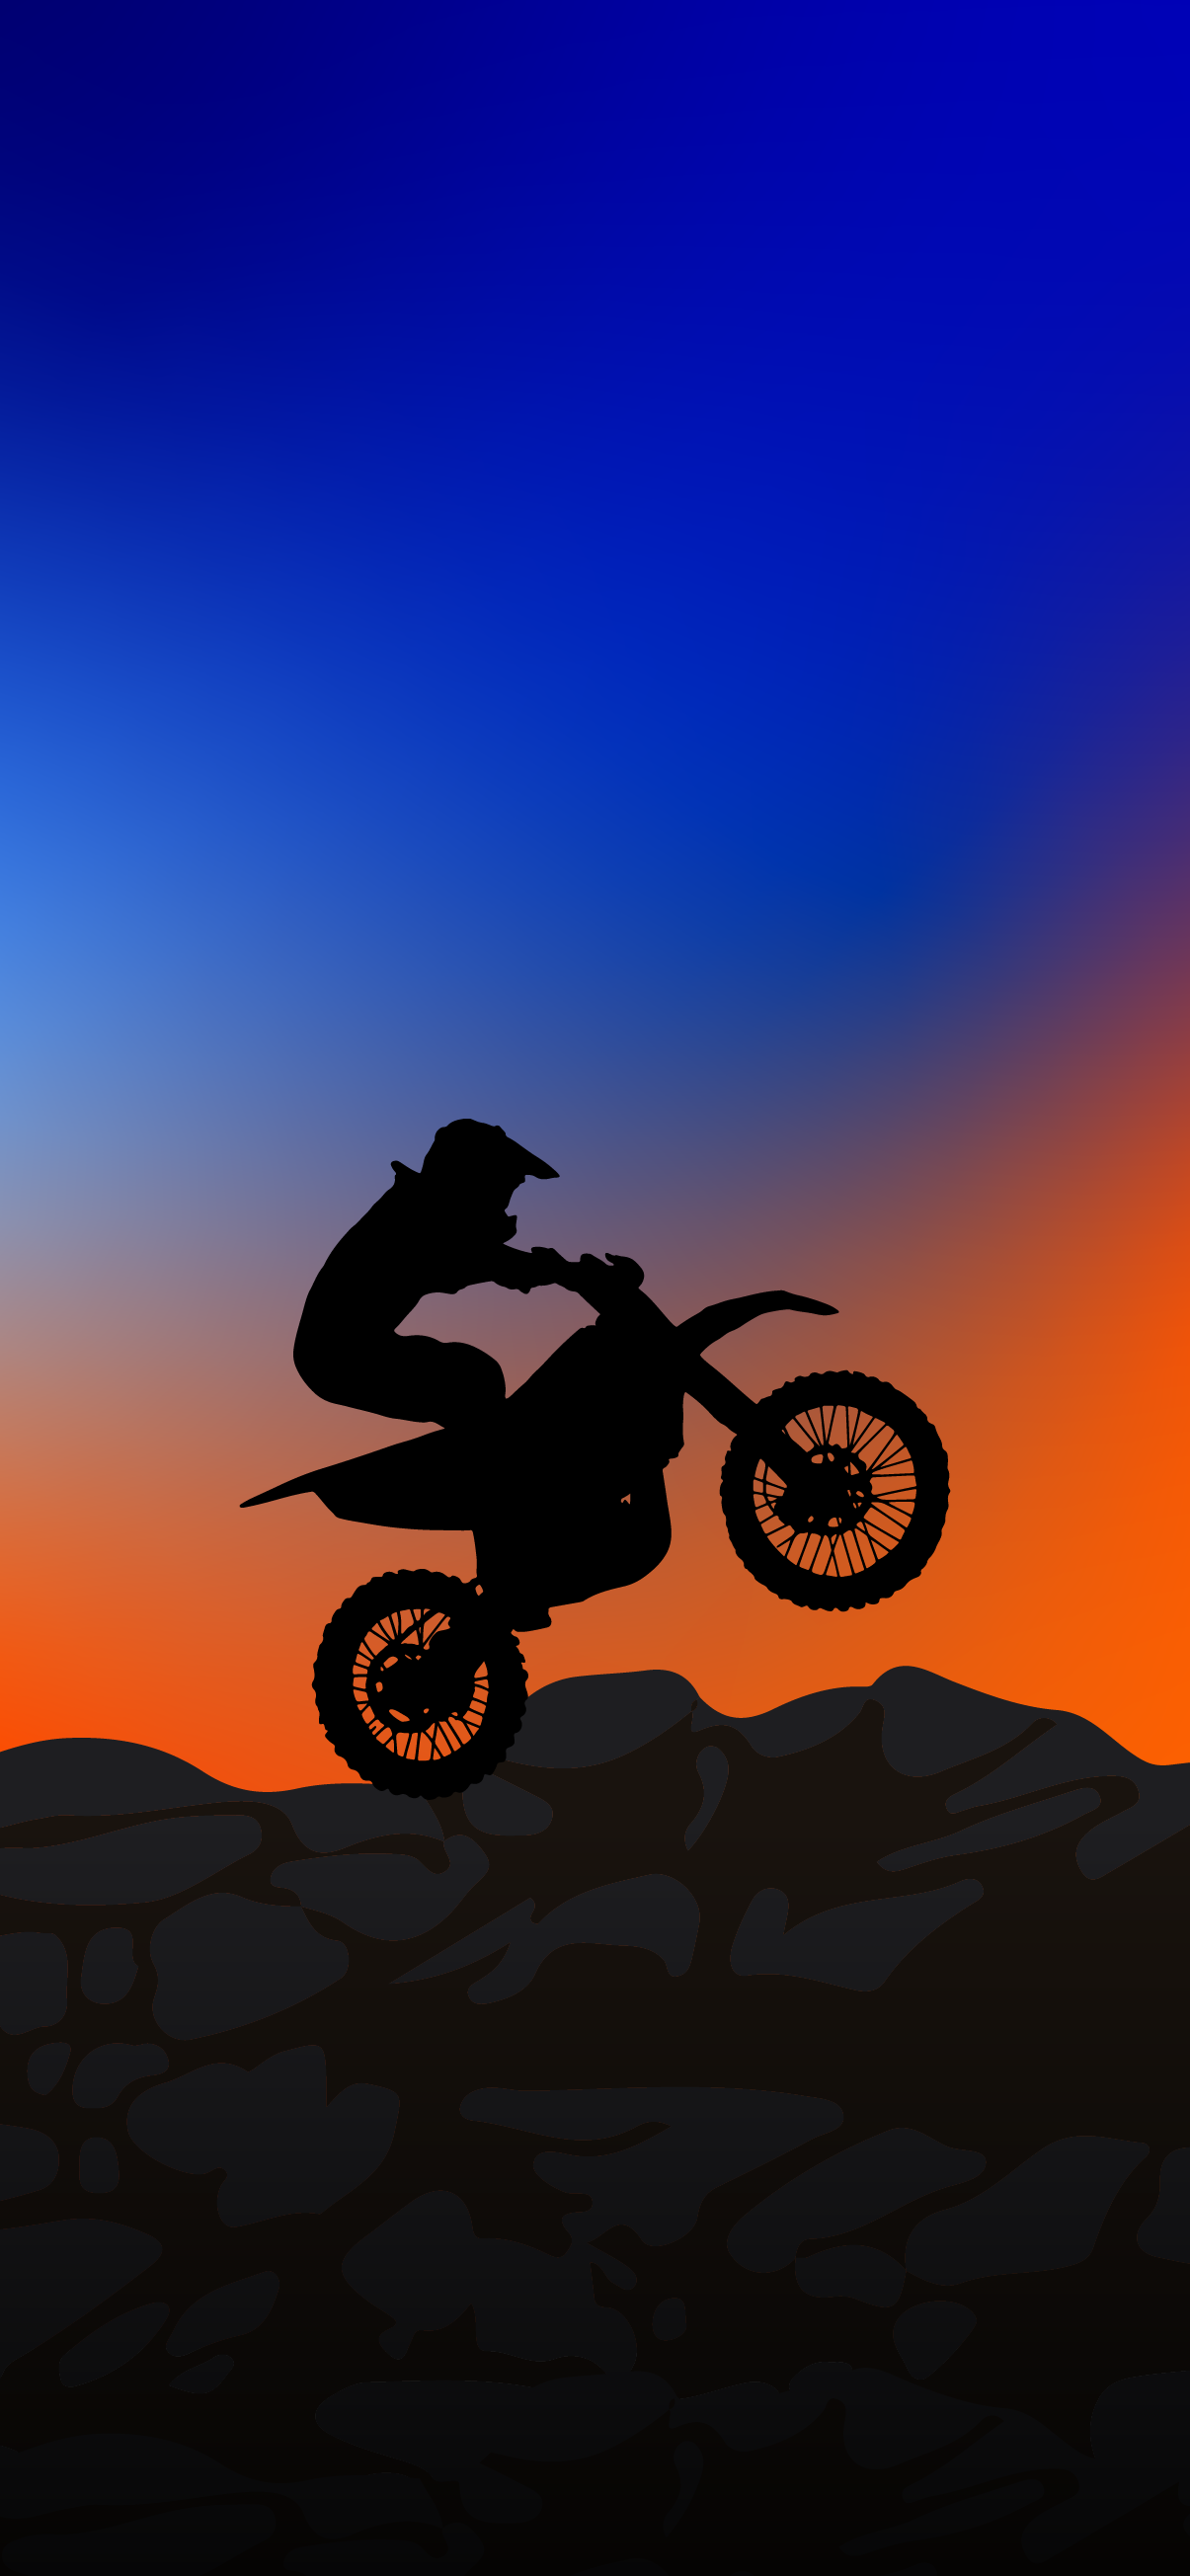 motocross-motorcycling-moto-radical-silhouette-iphone-wallpaper